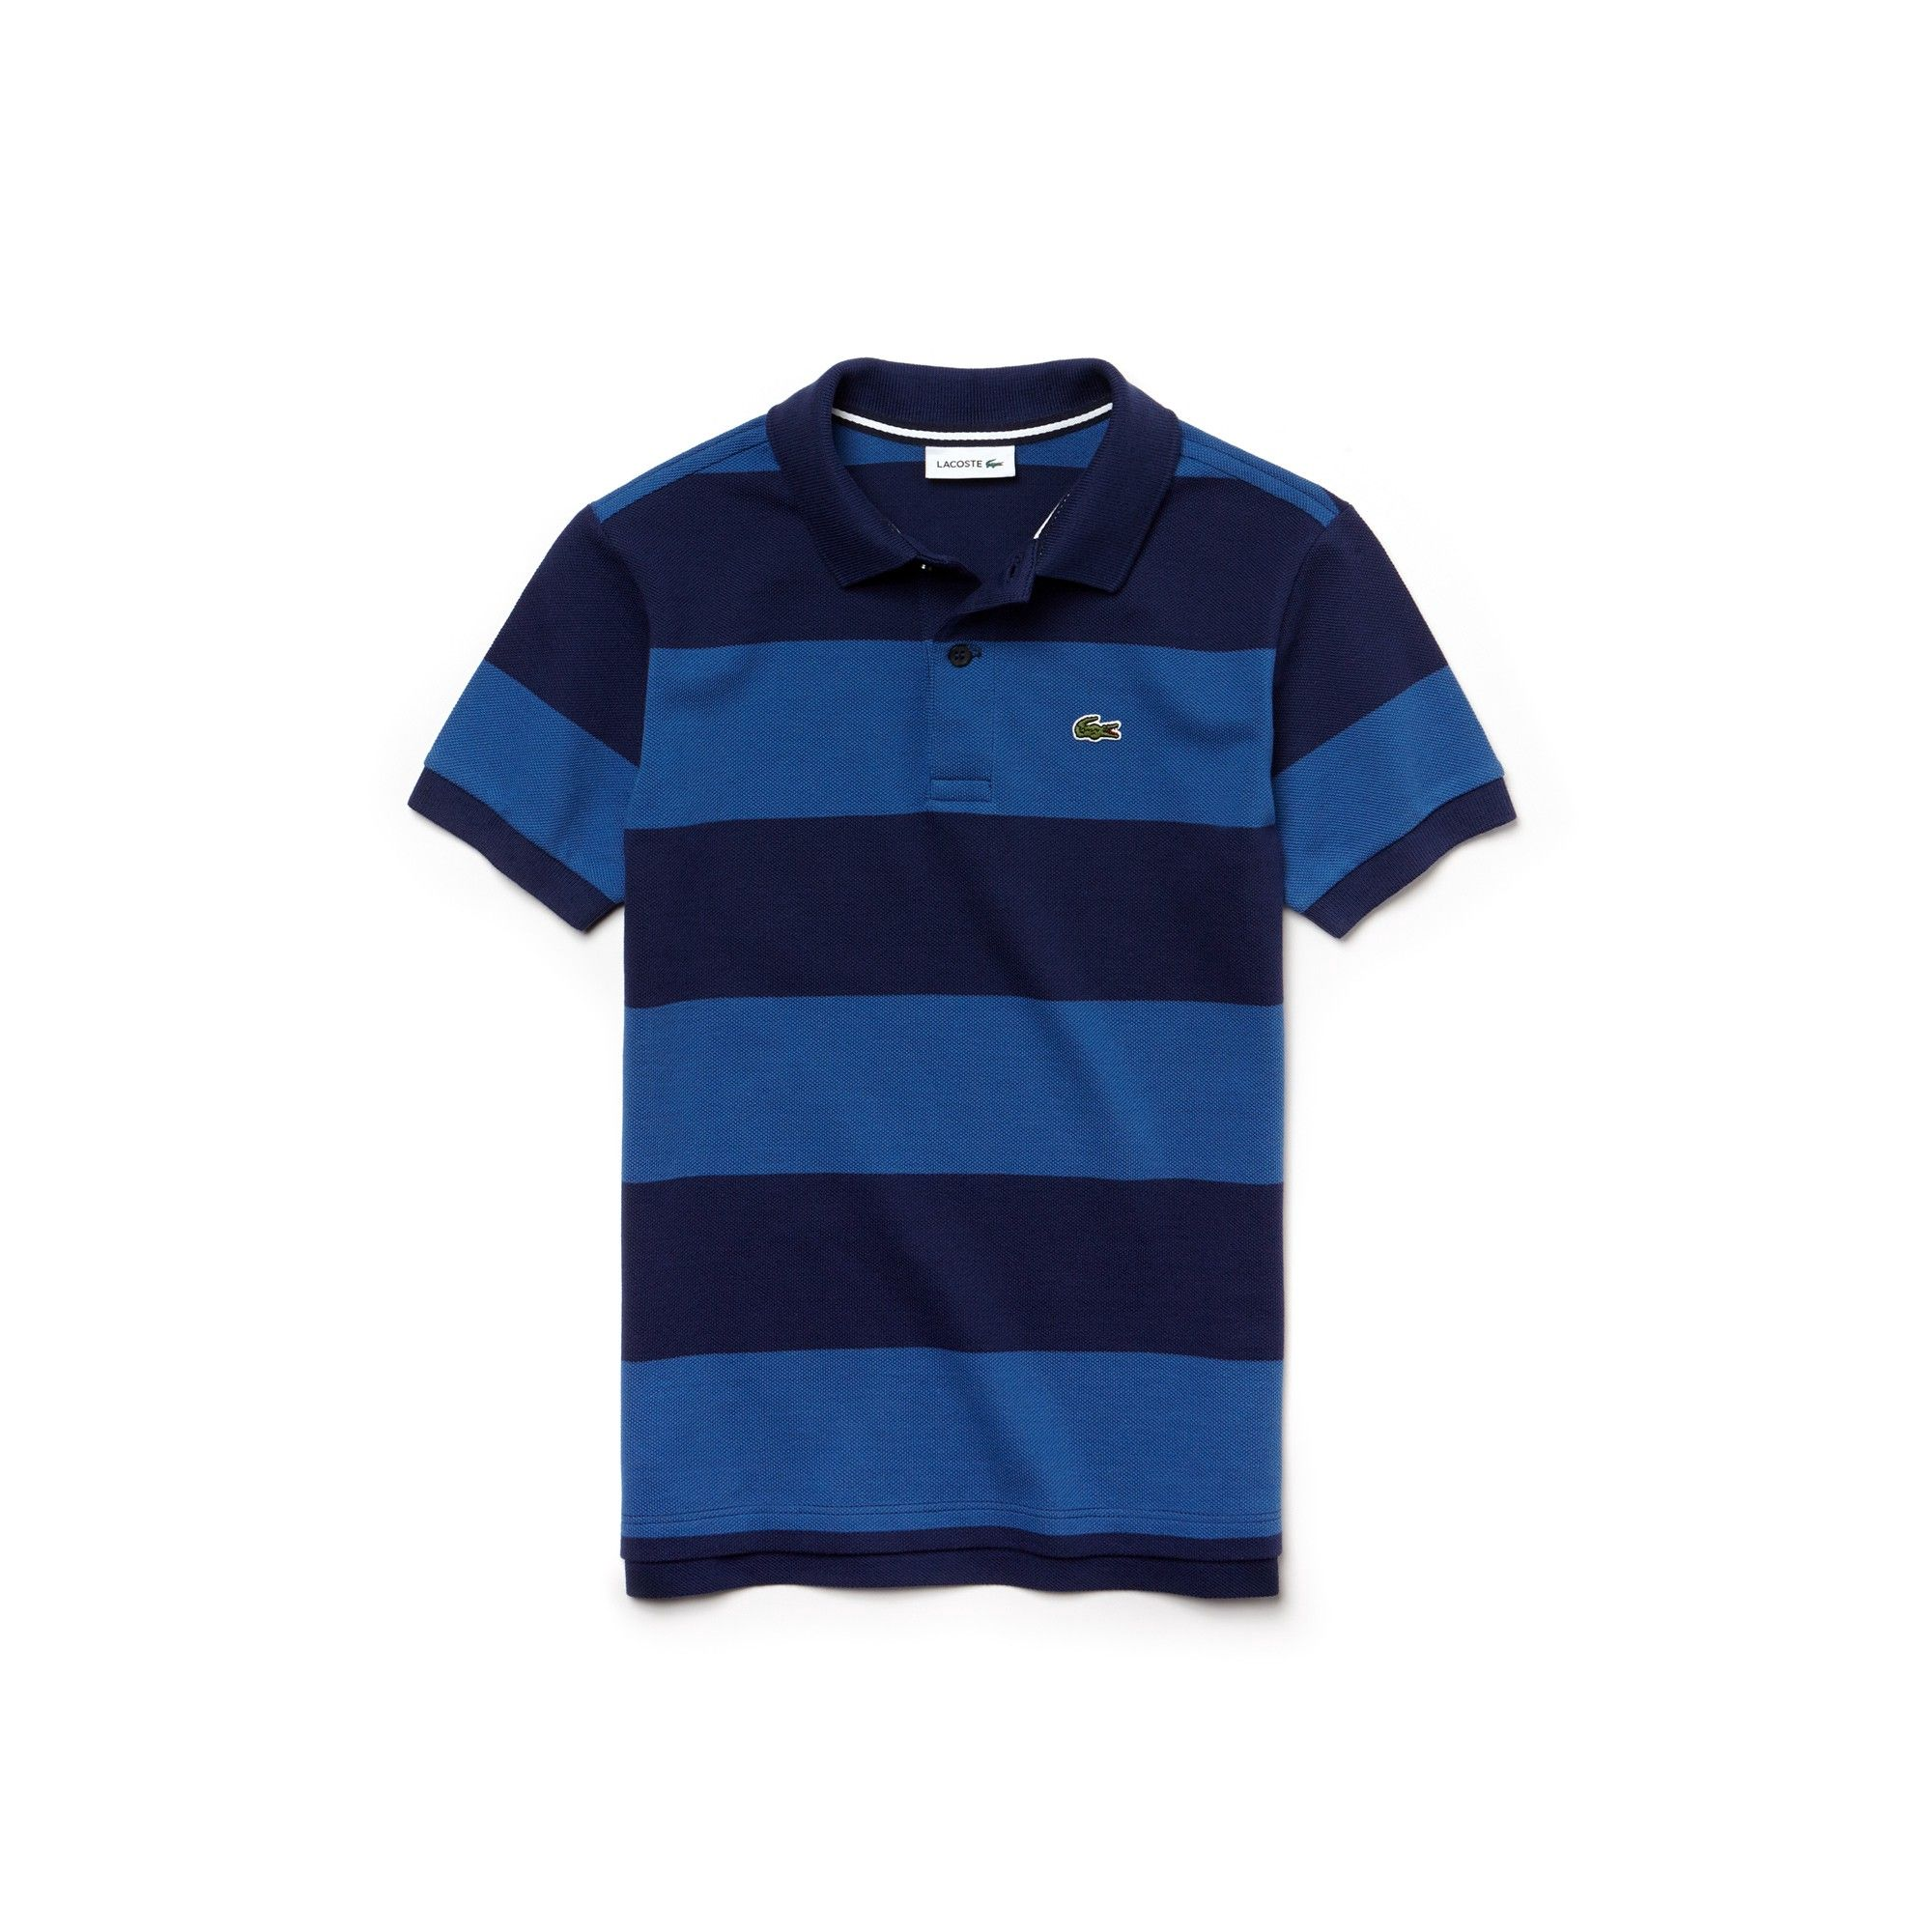 Lacoste Boys  Striped Cotton Petit Piqué Polo Shirt - White Undergrowth  Green 8 Years 1ee6e90290